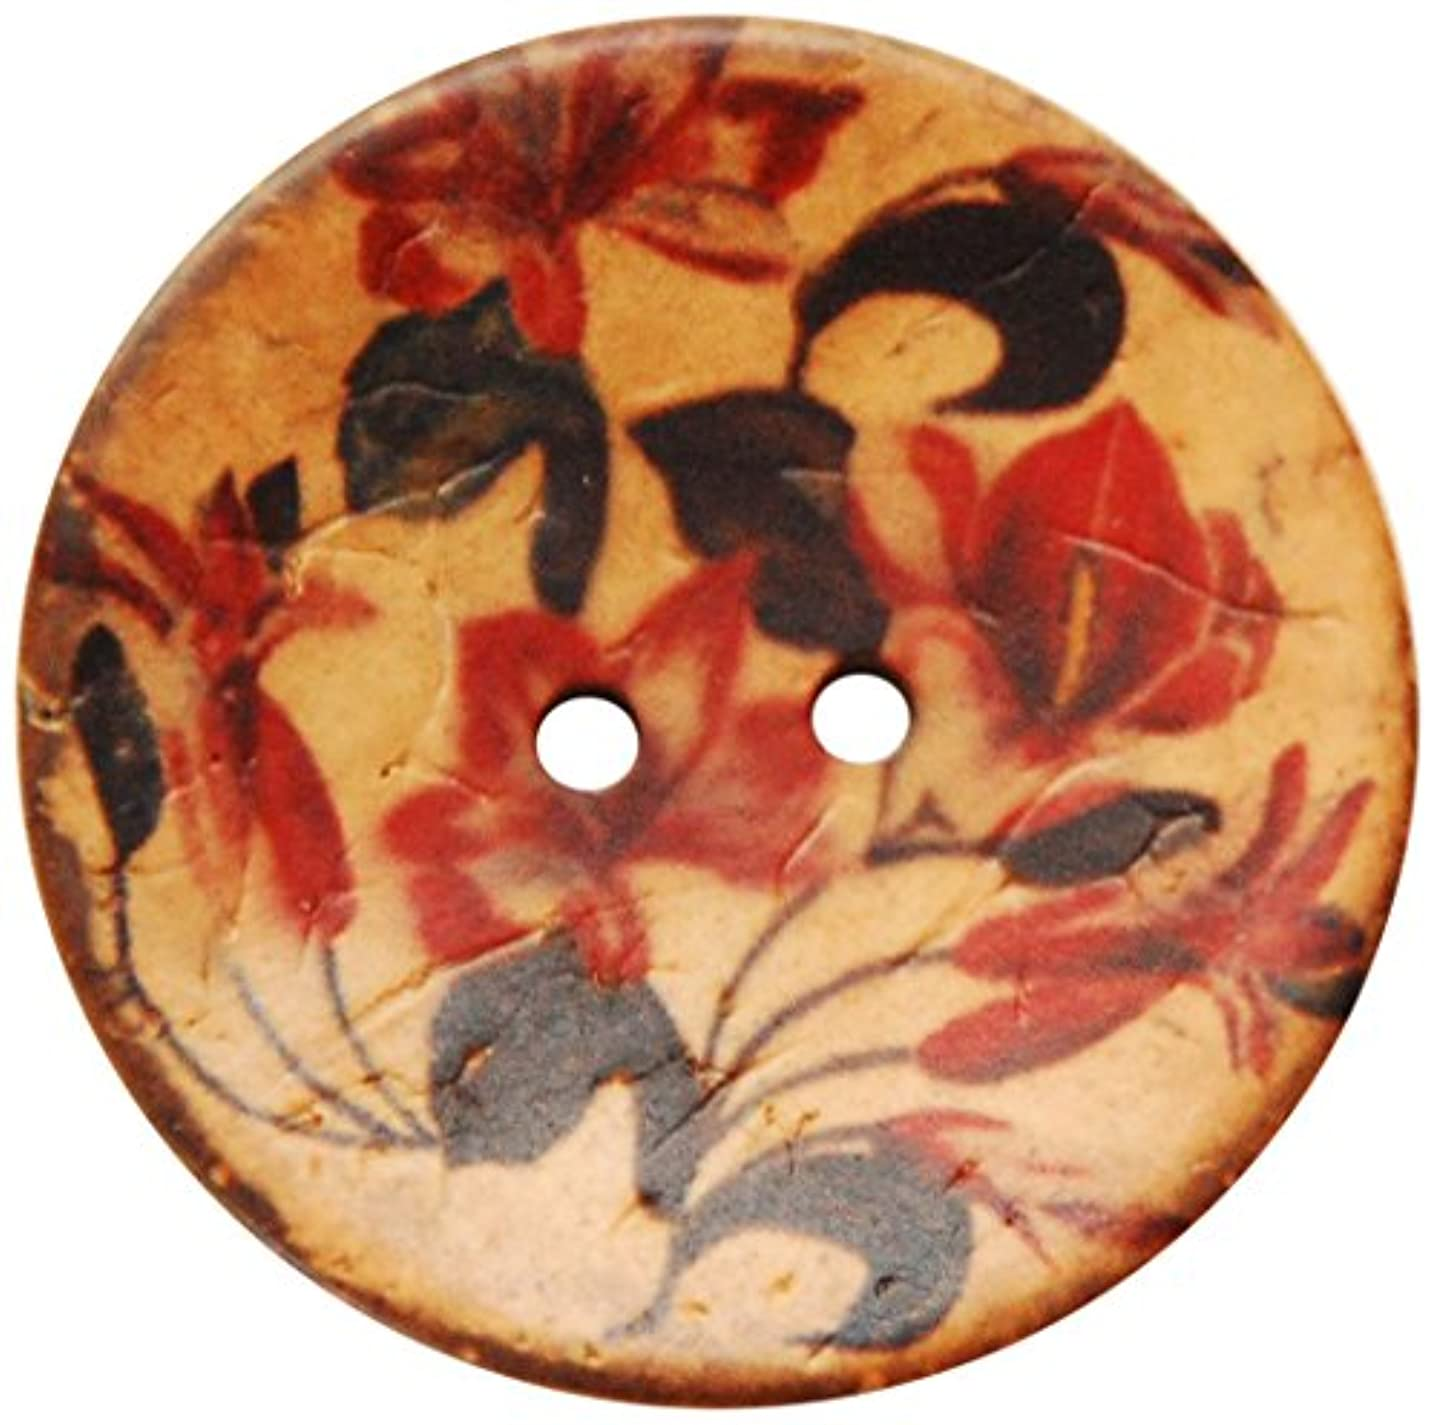 The Button Company 38 mm Printed Floral Coconut Wood Button, Dark Red